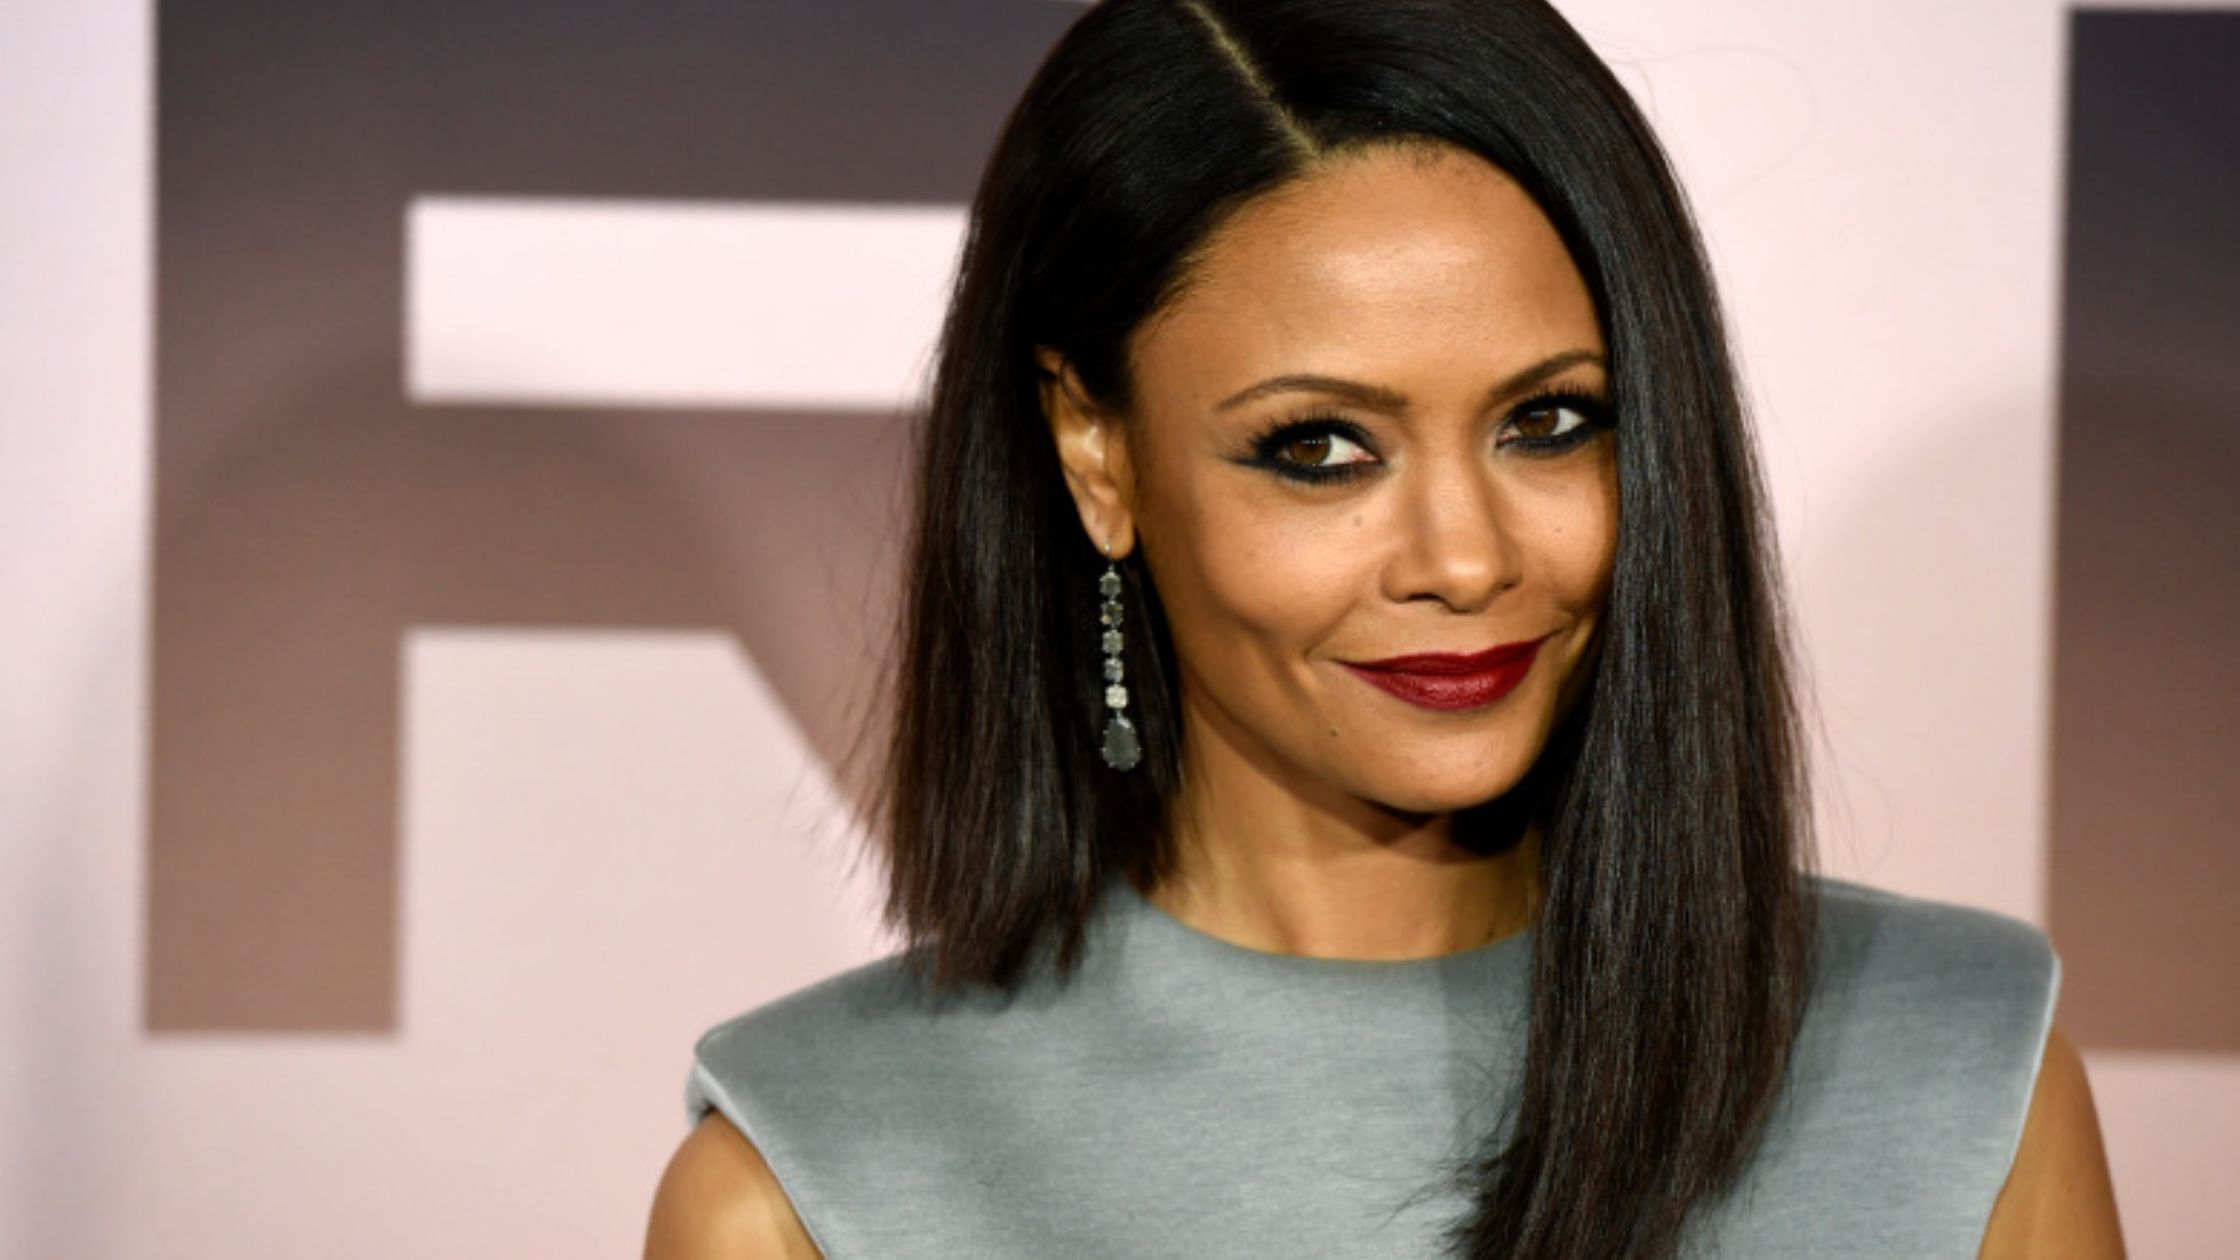 'Westworld' Star Thandie Newton is Moving Back to Her Original Zulu Name 'Thandwie'